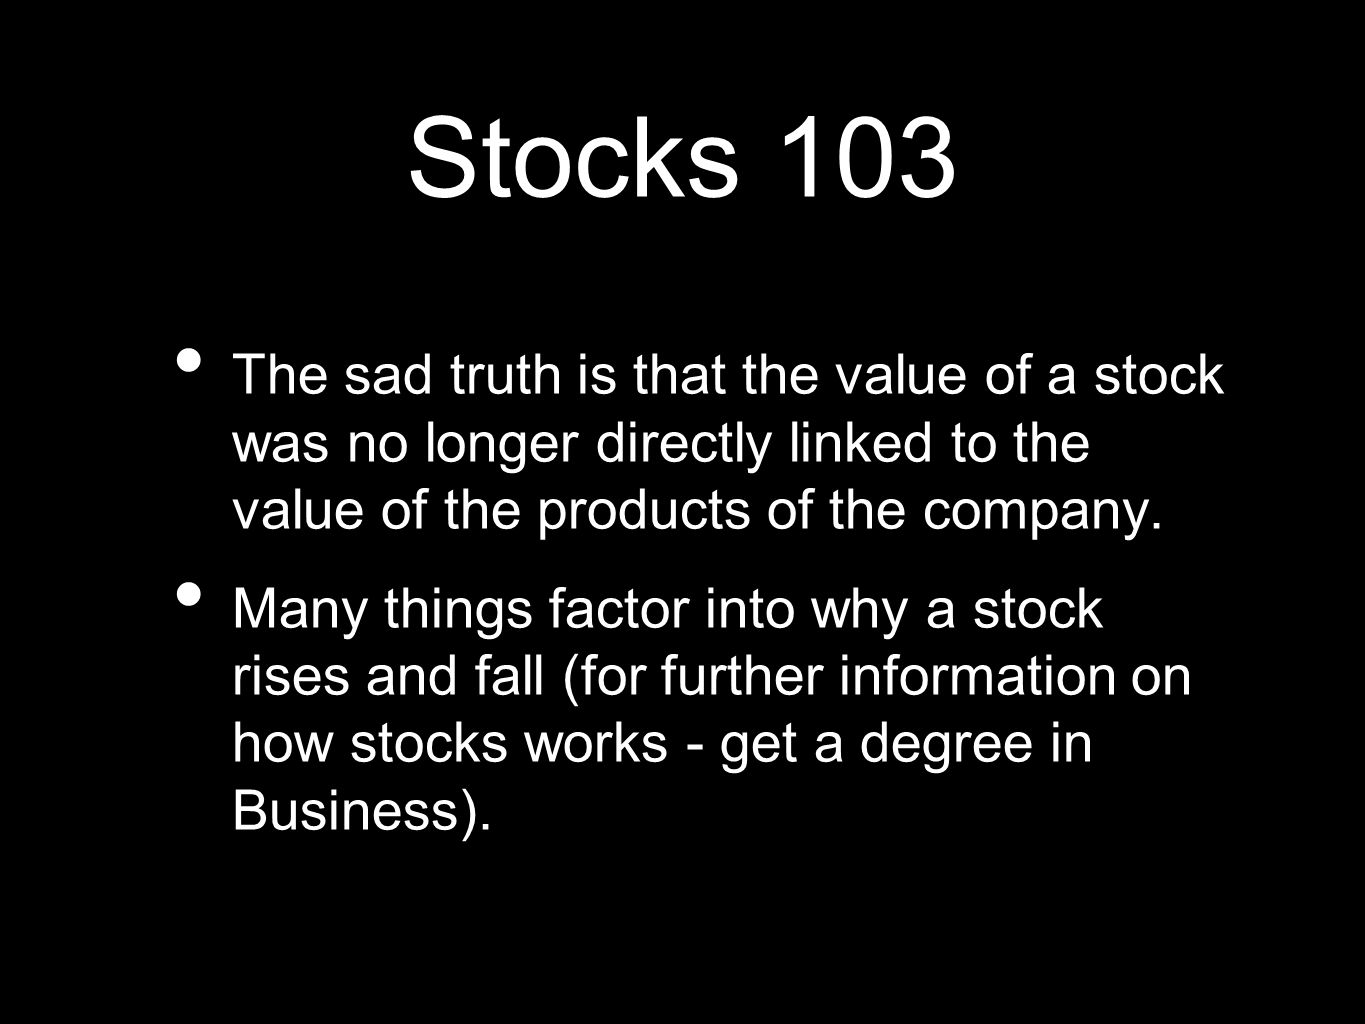 Stocks 103 The sad truth is that the value of a stock was no longer directly linked to the value of the products of the company.